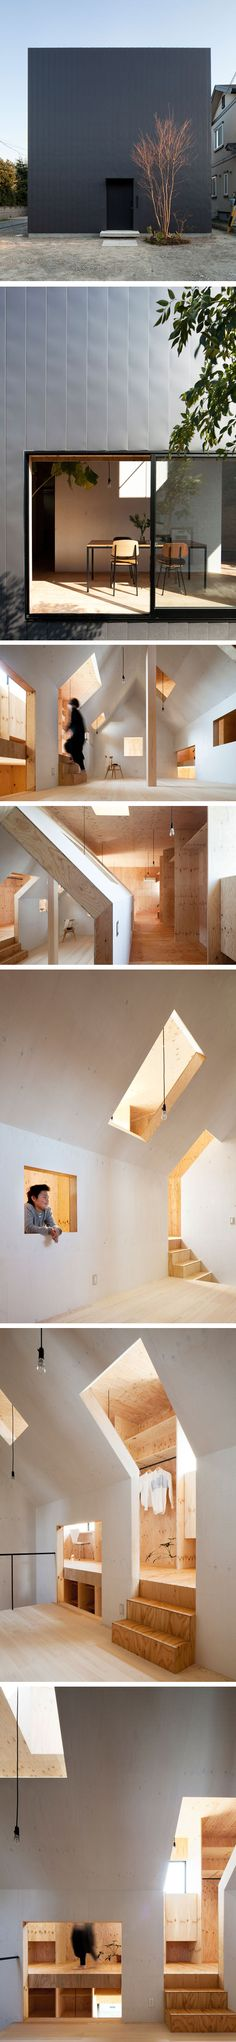 Ant house by MA STYLE Architects in Japan